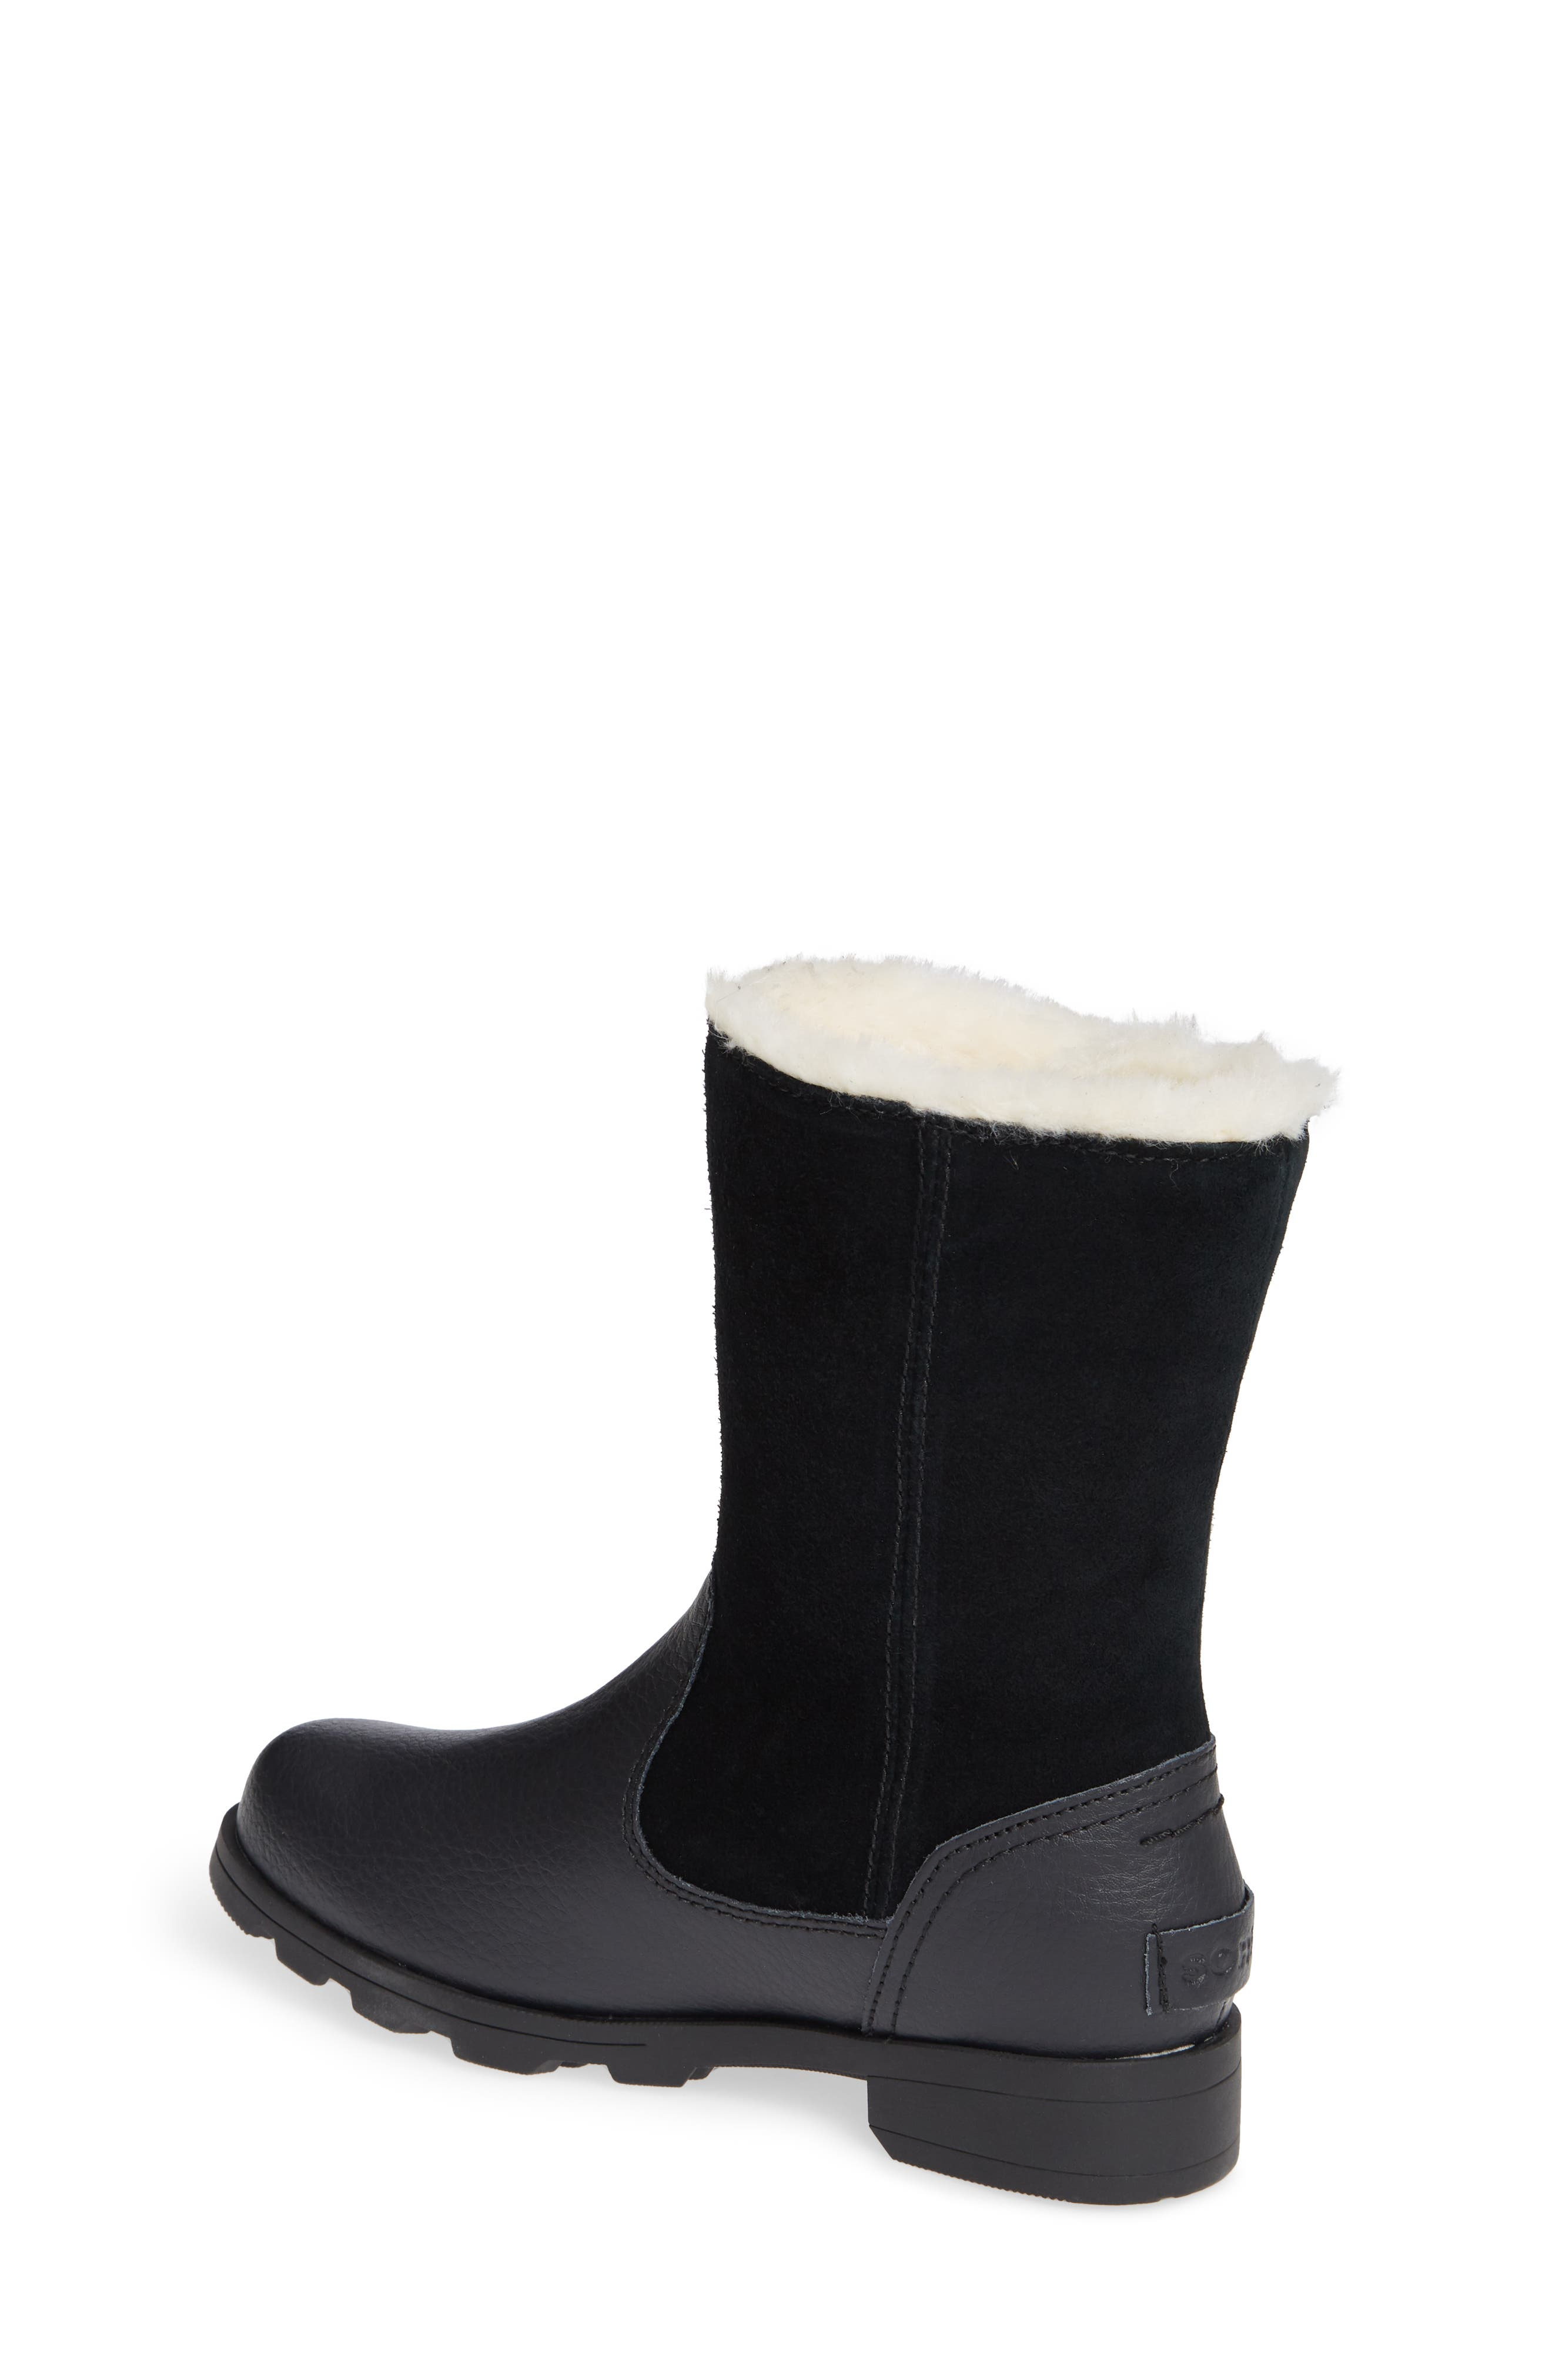 Emelie Waterproof Faux Fur Lined Boot,                             Alternate thumbnail 2, color,                             010